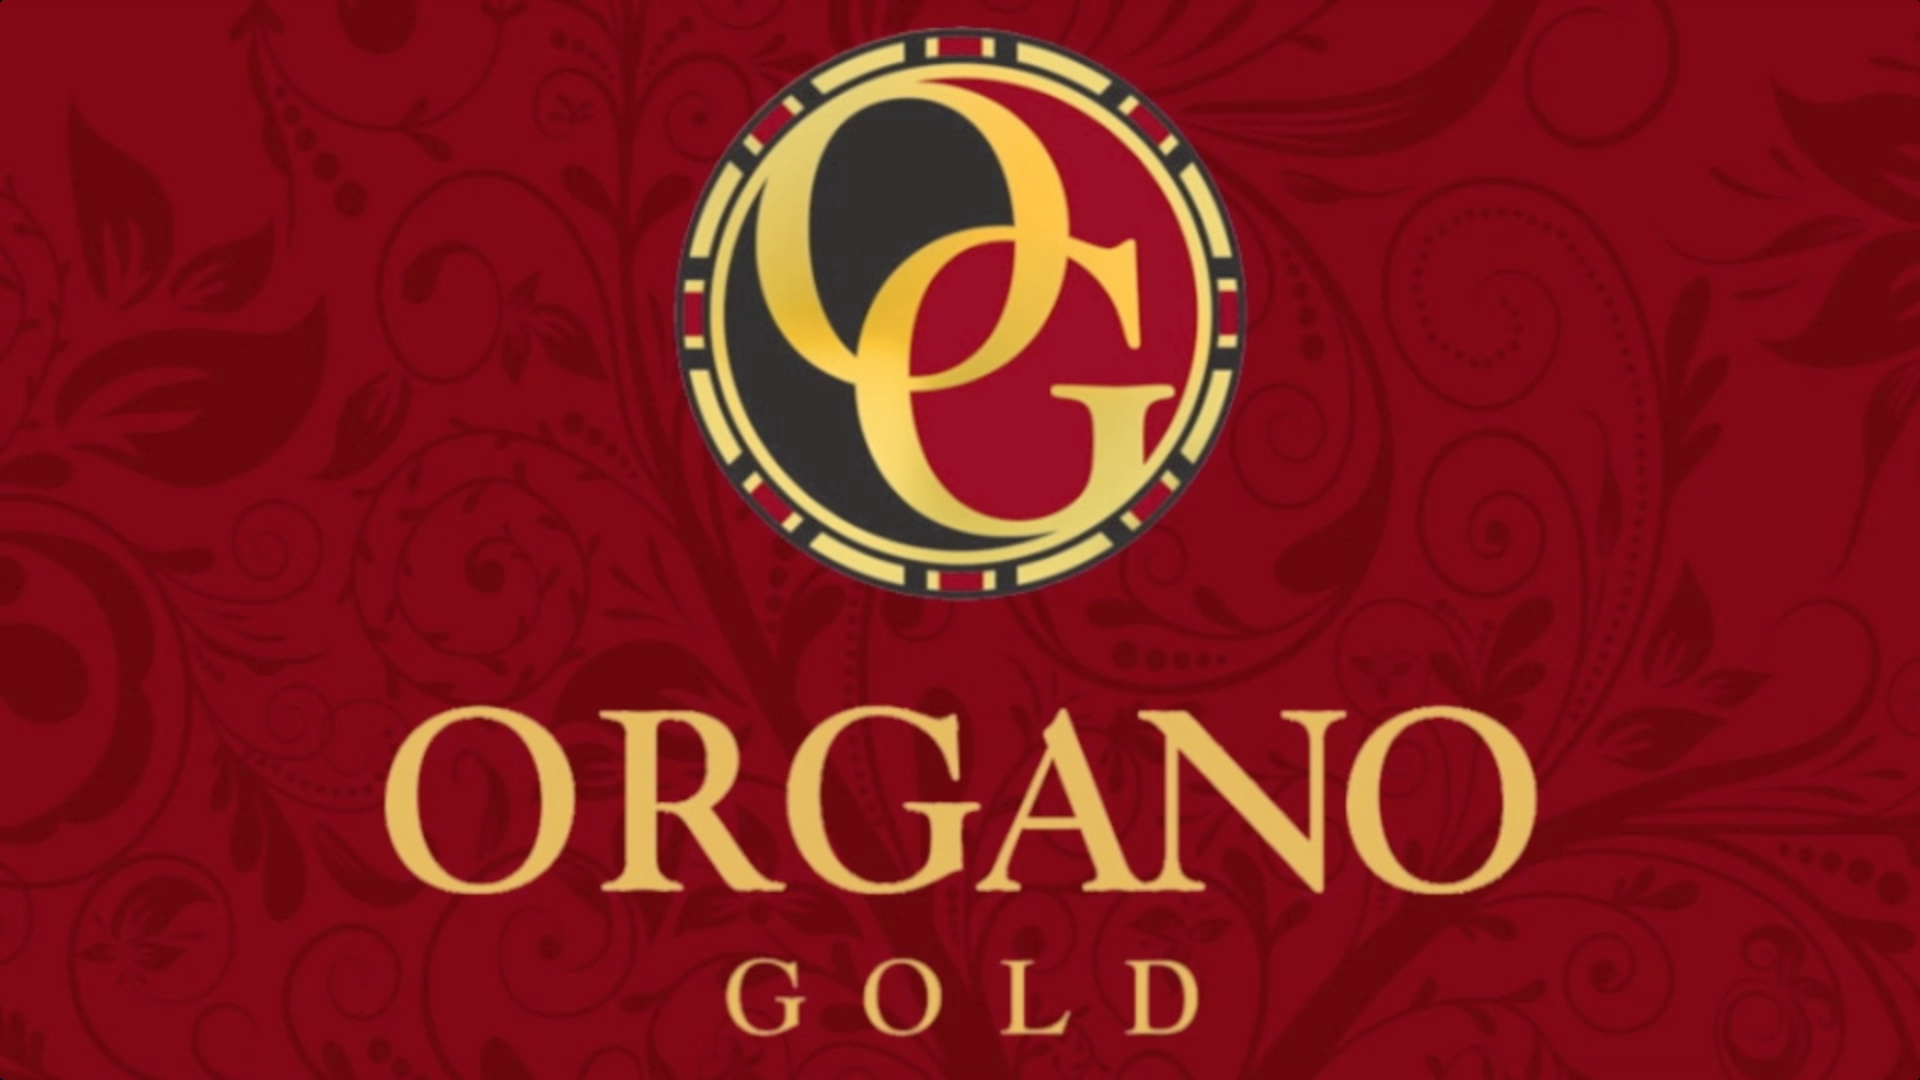 OrganoGold Is Coming to Nigeria in May. See How They Could Help You Make At Least $2,000 -$5,000/Monthly on Spare Time